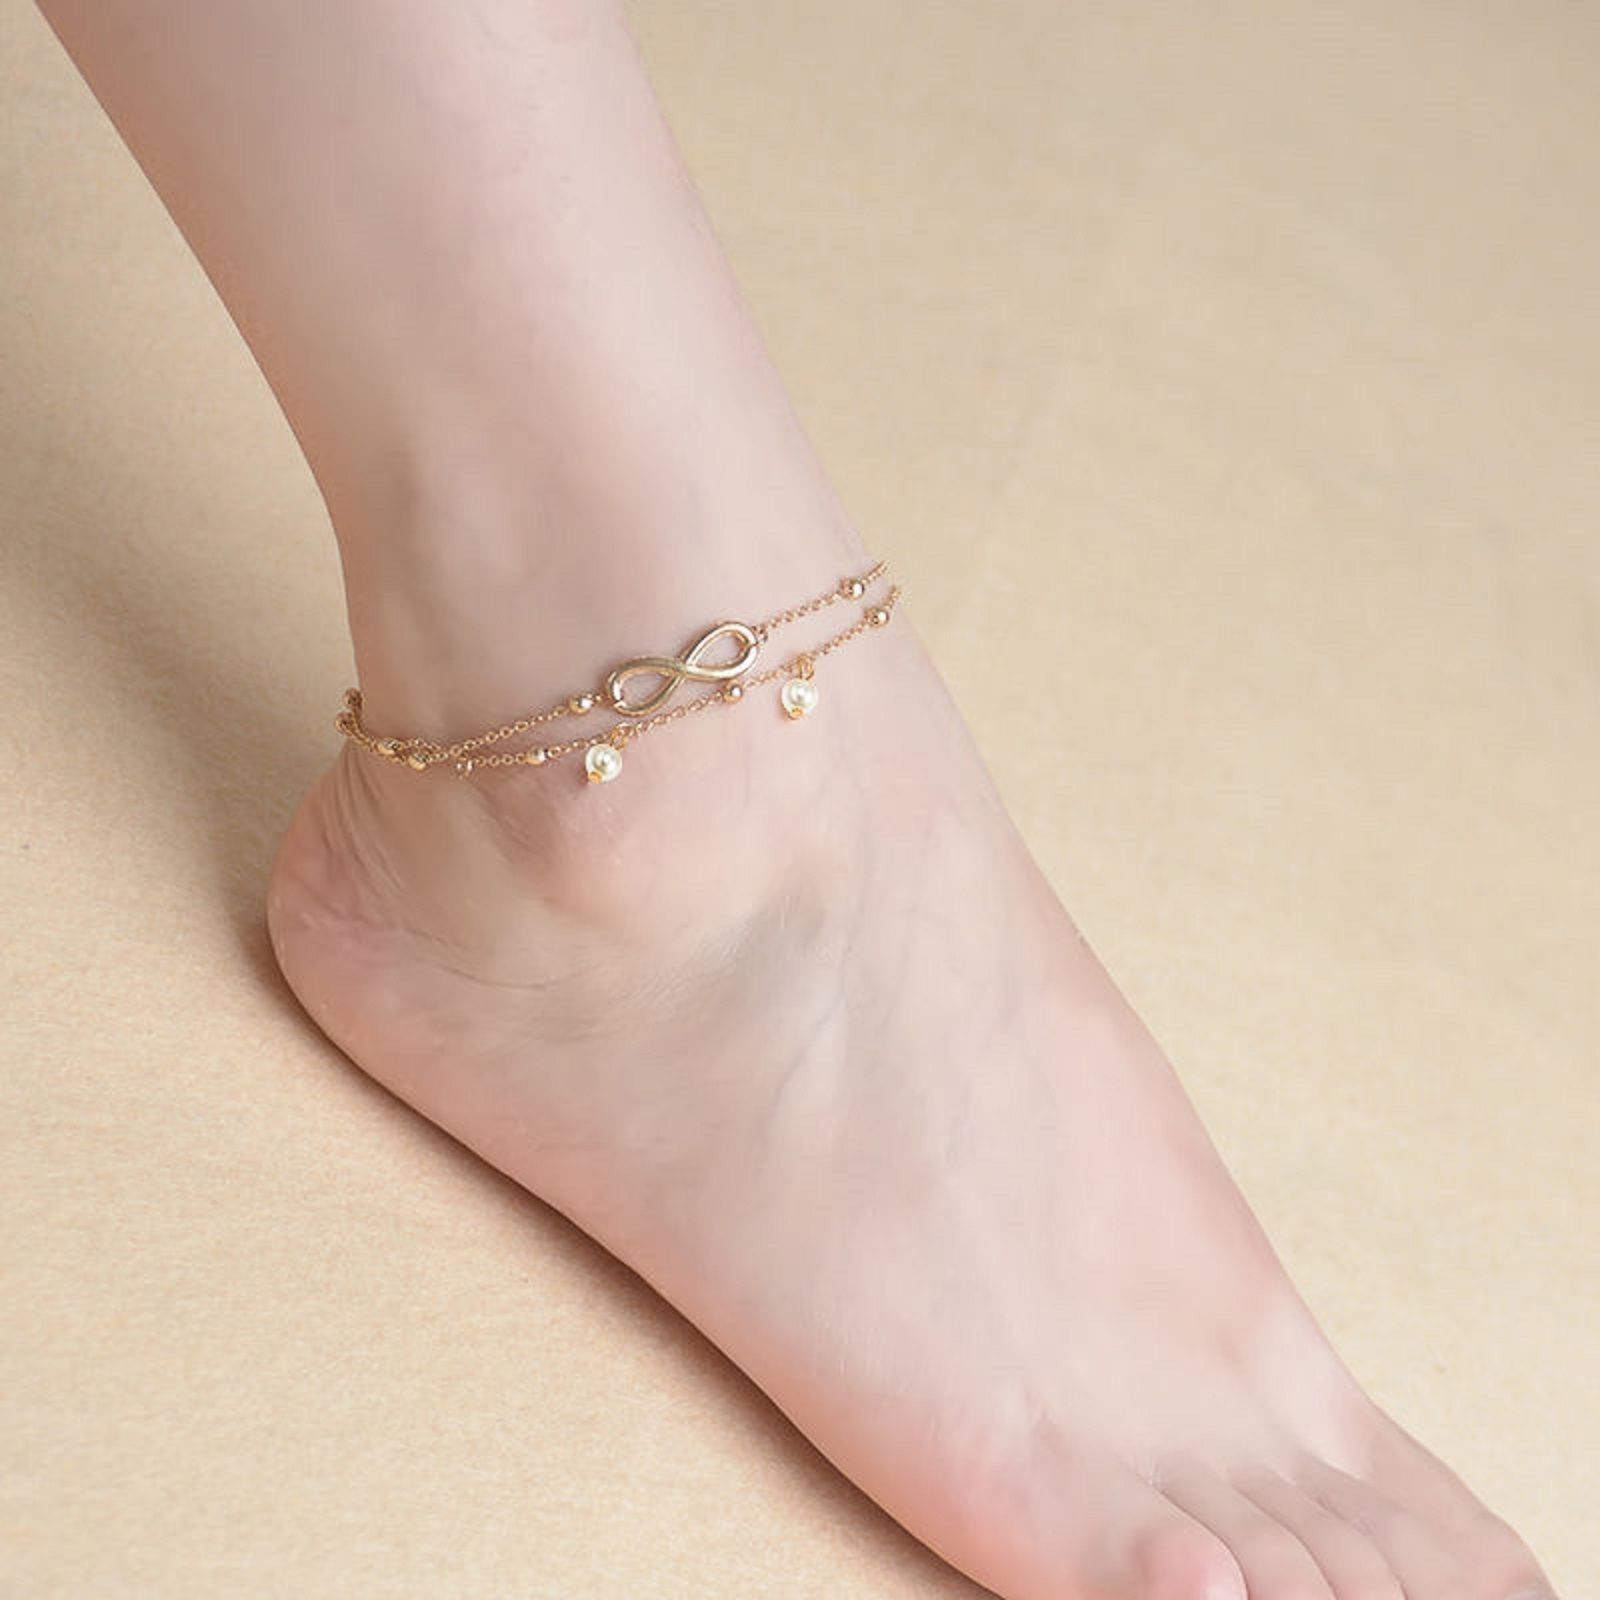 cz anklets gifts women ankle a on from bracelets high gold bells fashion quality jewelry womens crystal styles product for silver anklet leg bracelet diamond foot